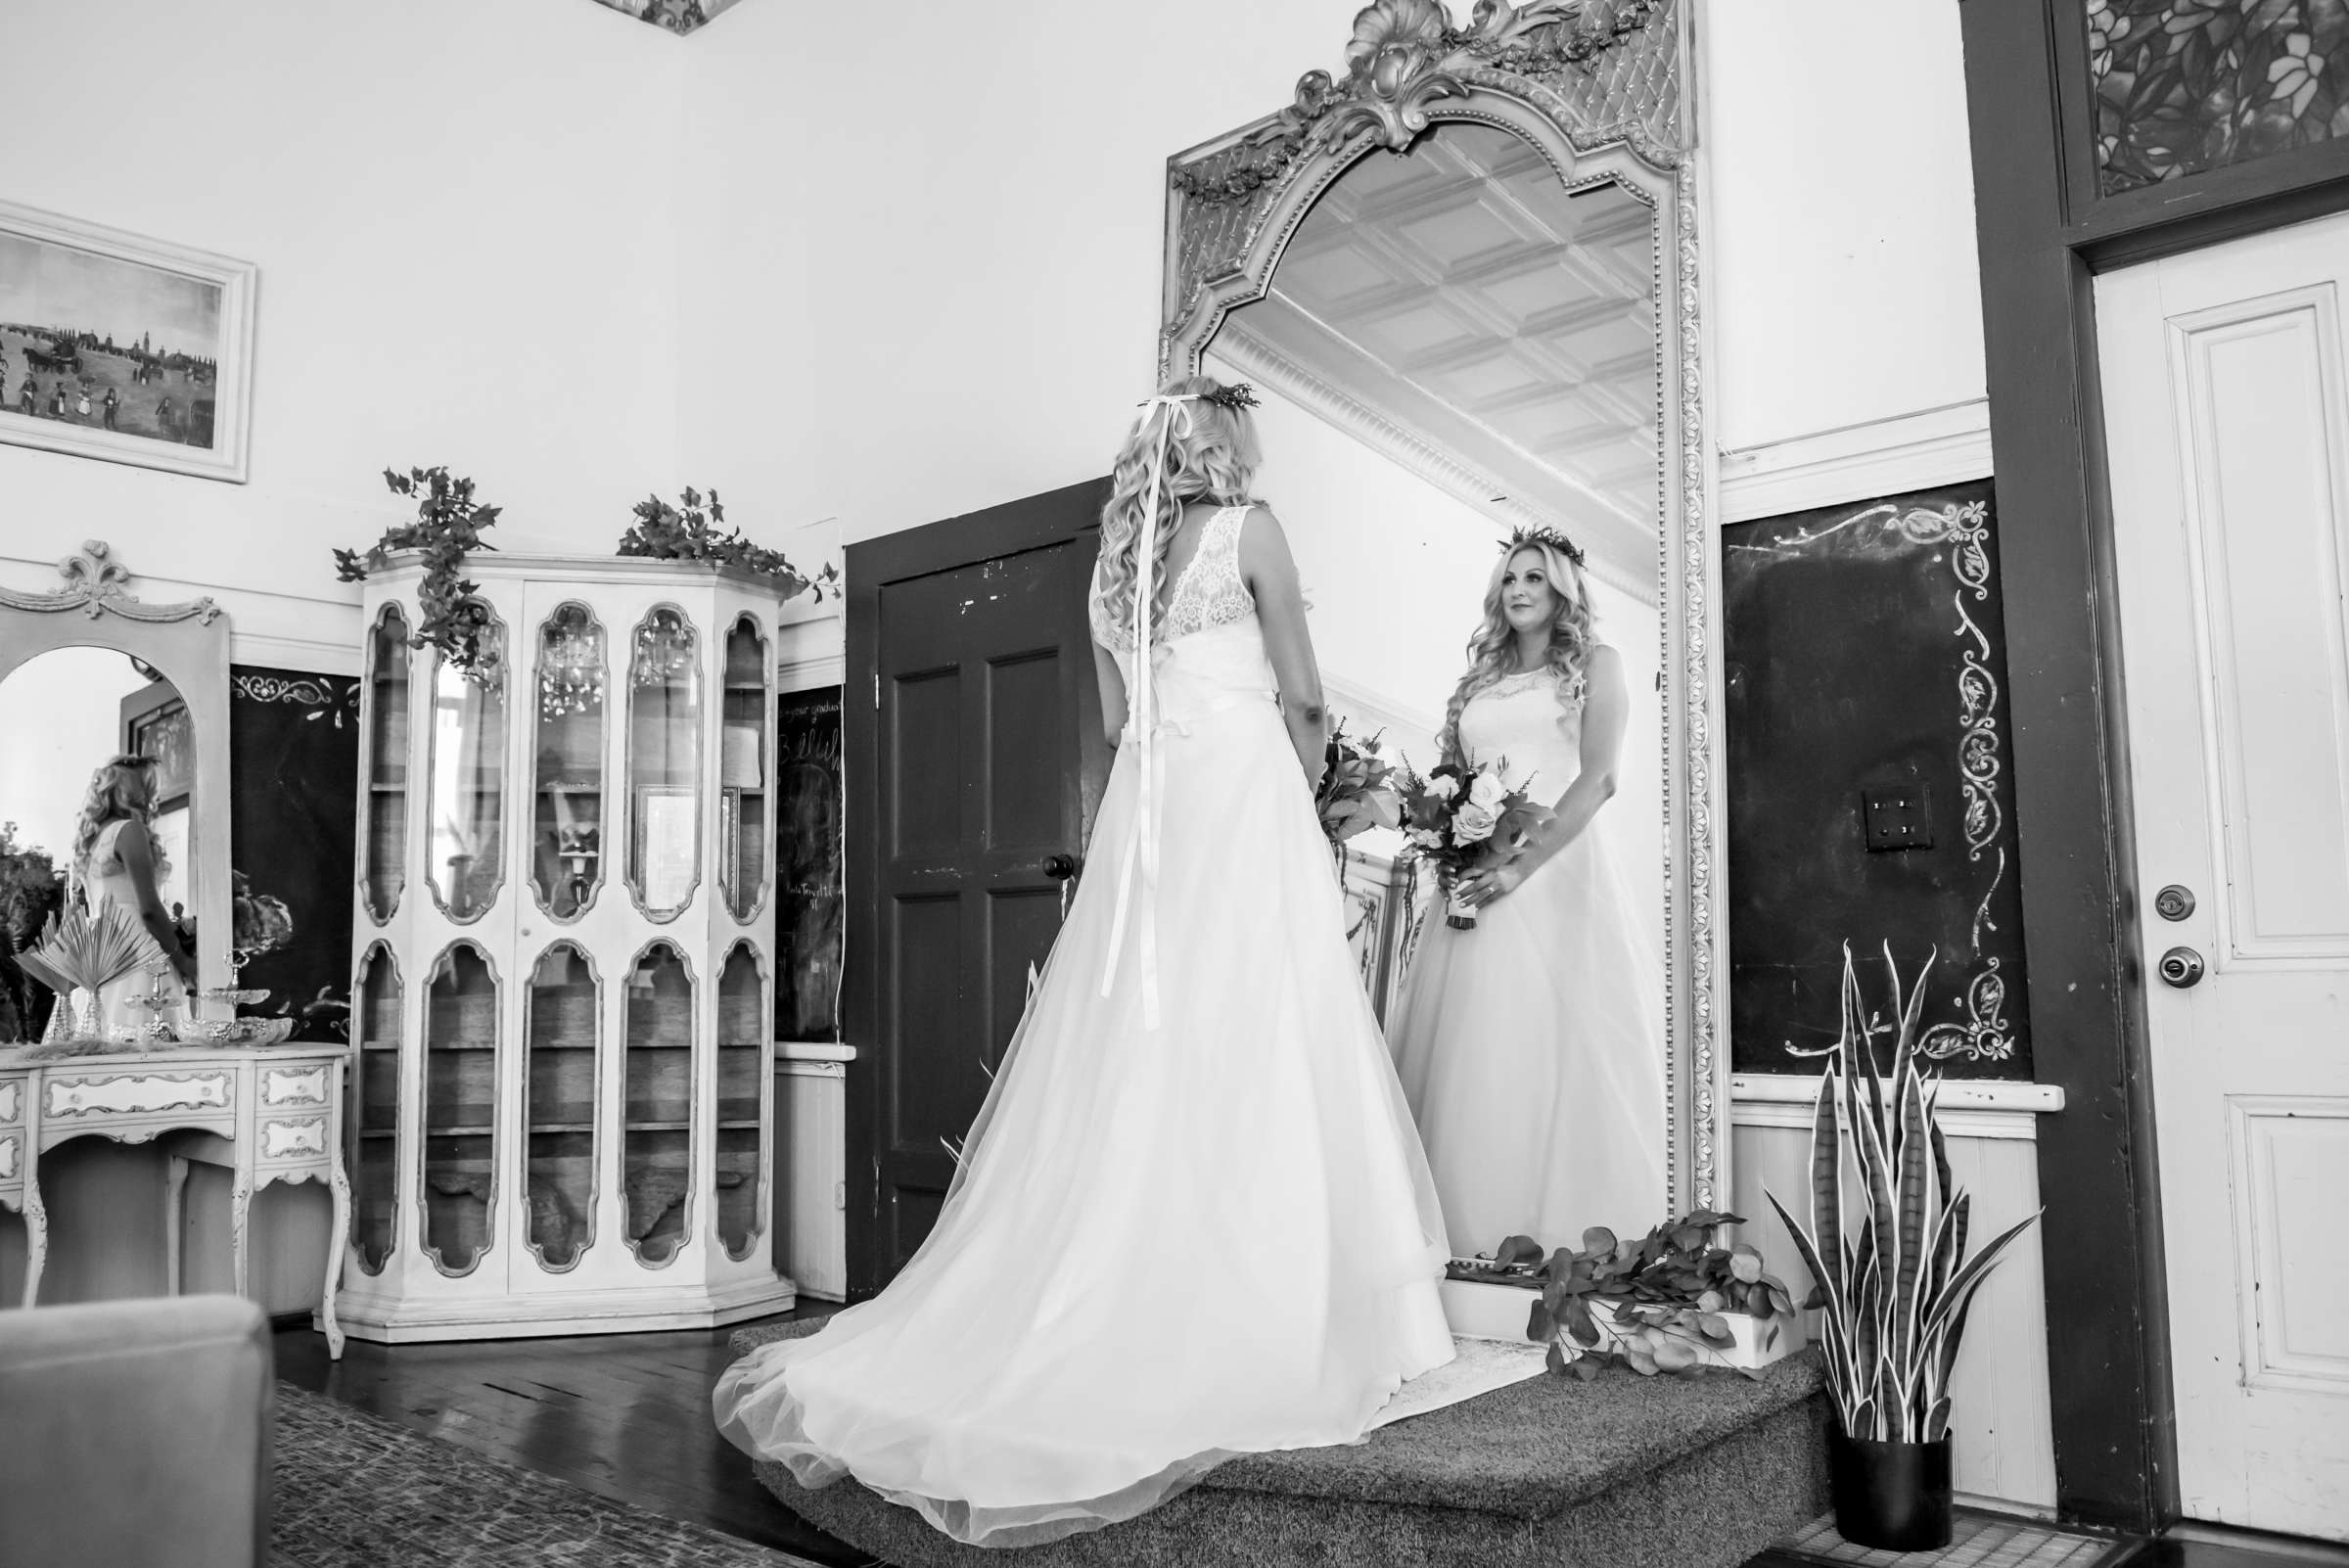 Twin Oaks House & Gardens Wedding Estate Wedding, Brittany and Sean Wedding Photo #44 by True Photography